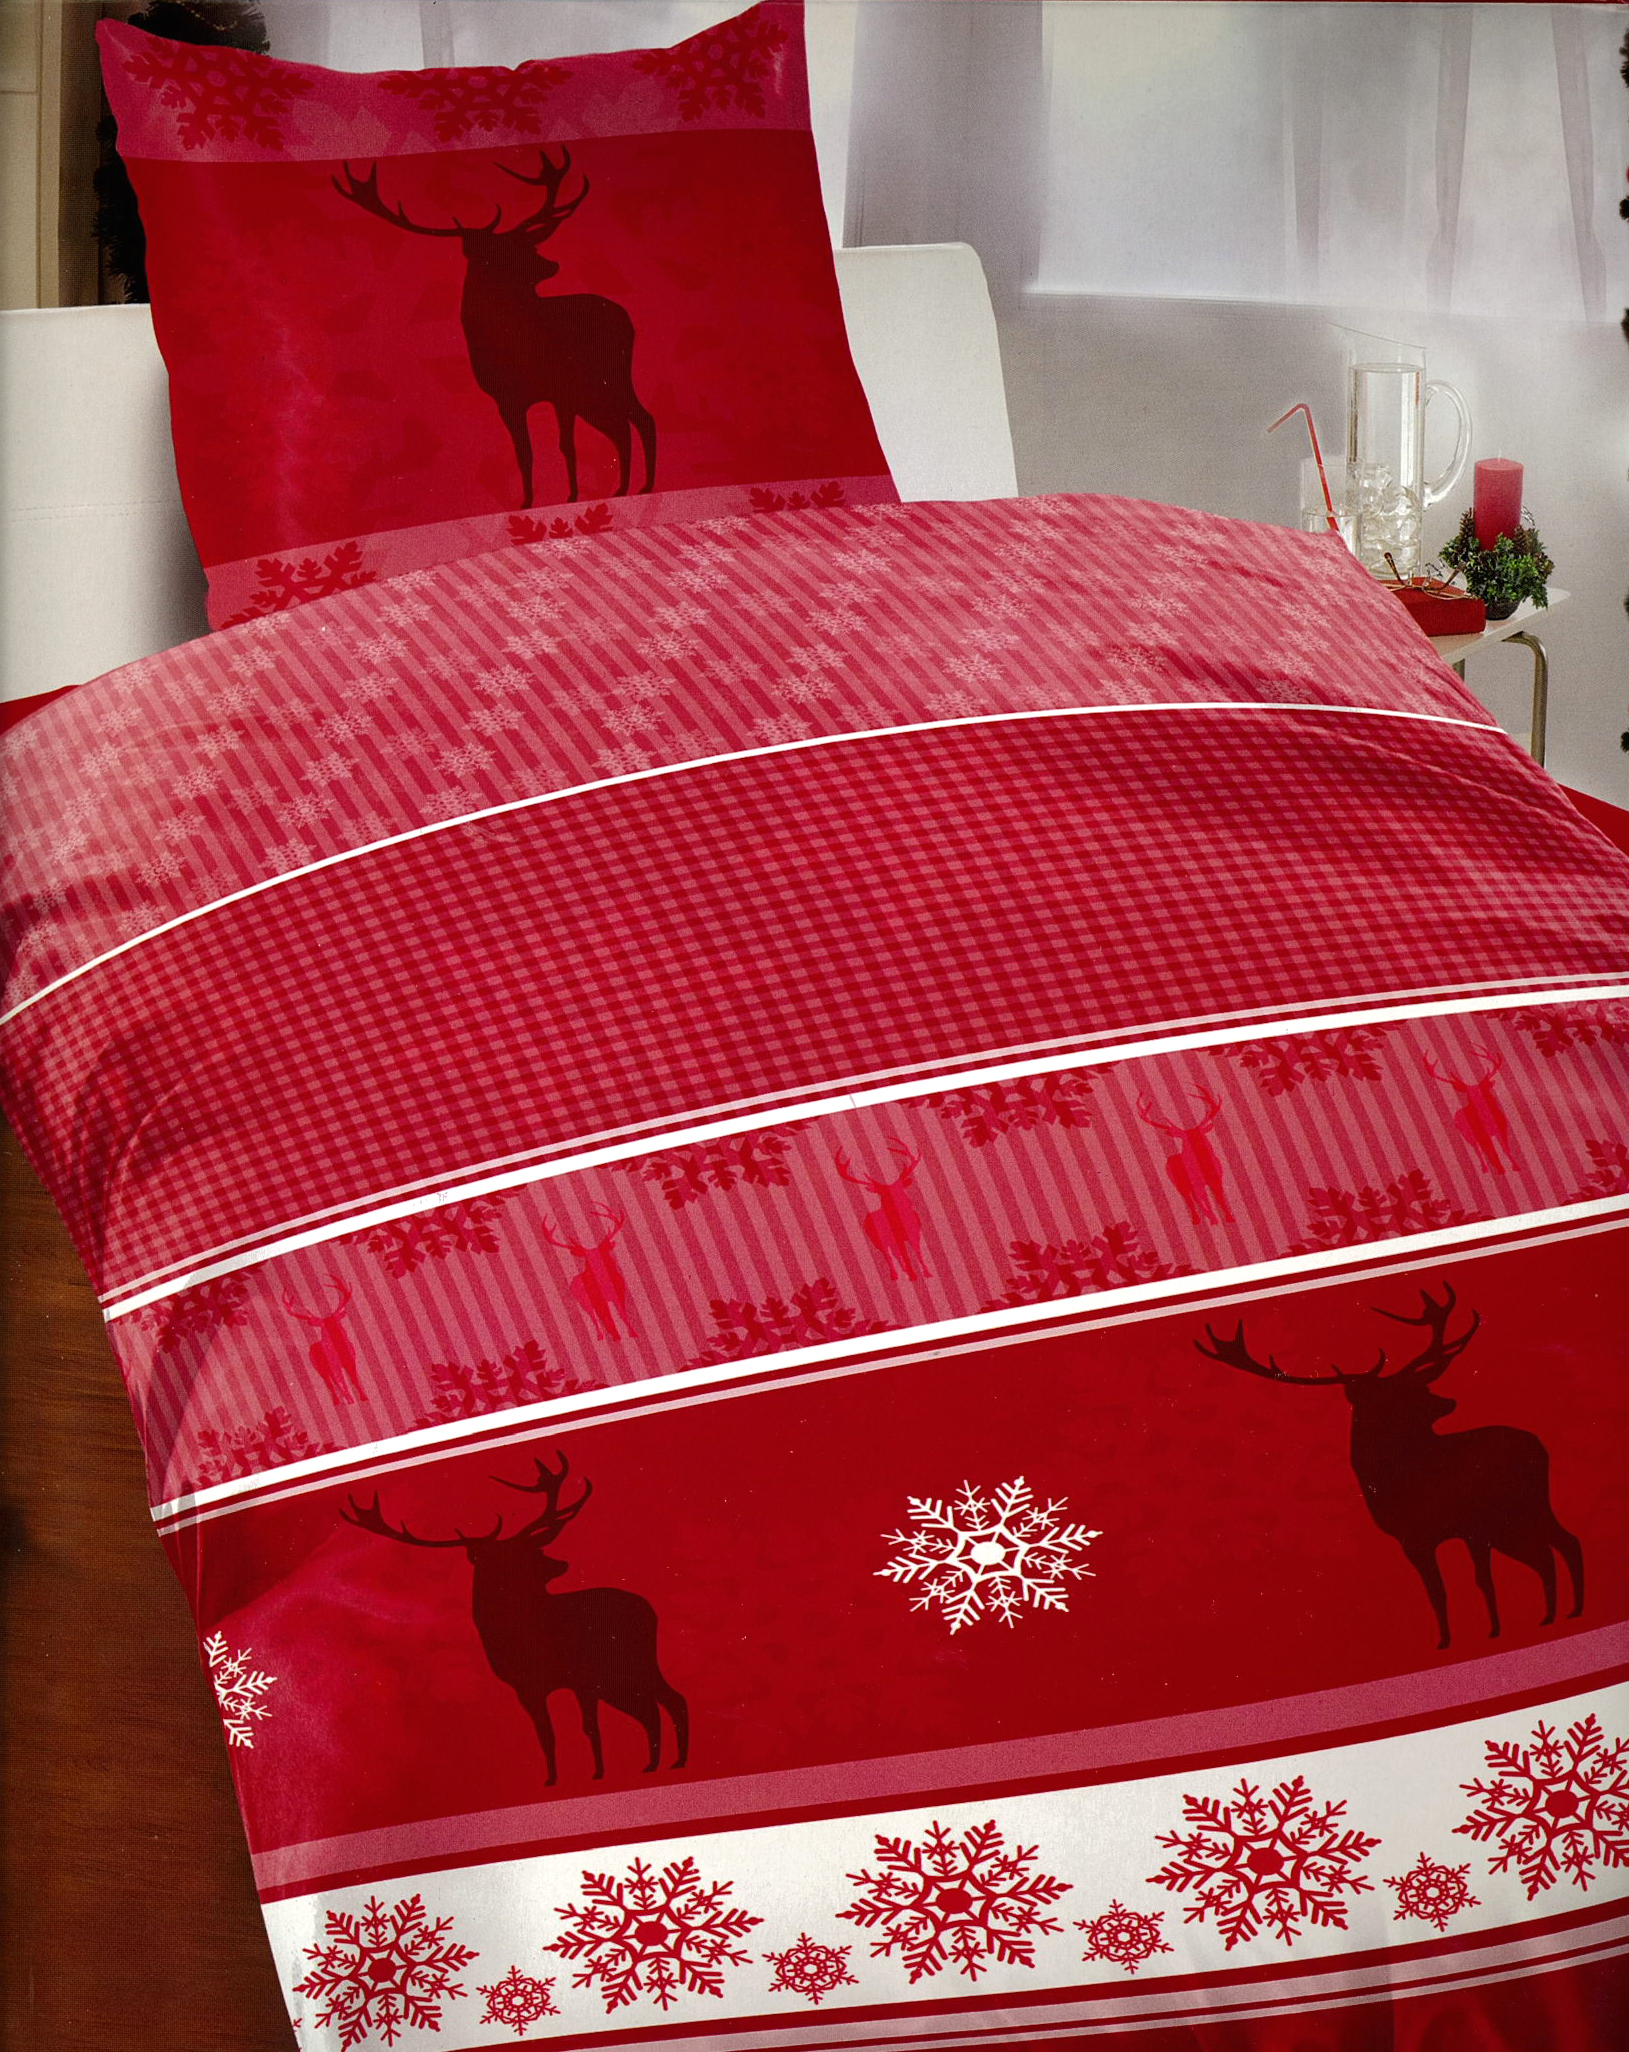 4tlg bettw sche 155x220 flausch fleece winter elch weihnachten in rot wei ebay. Black Bedroom Furniture Sets. Home Design Ideas